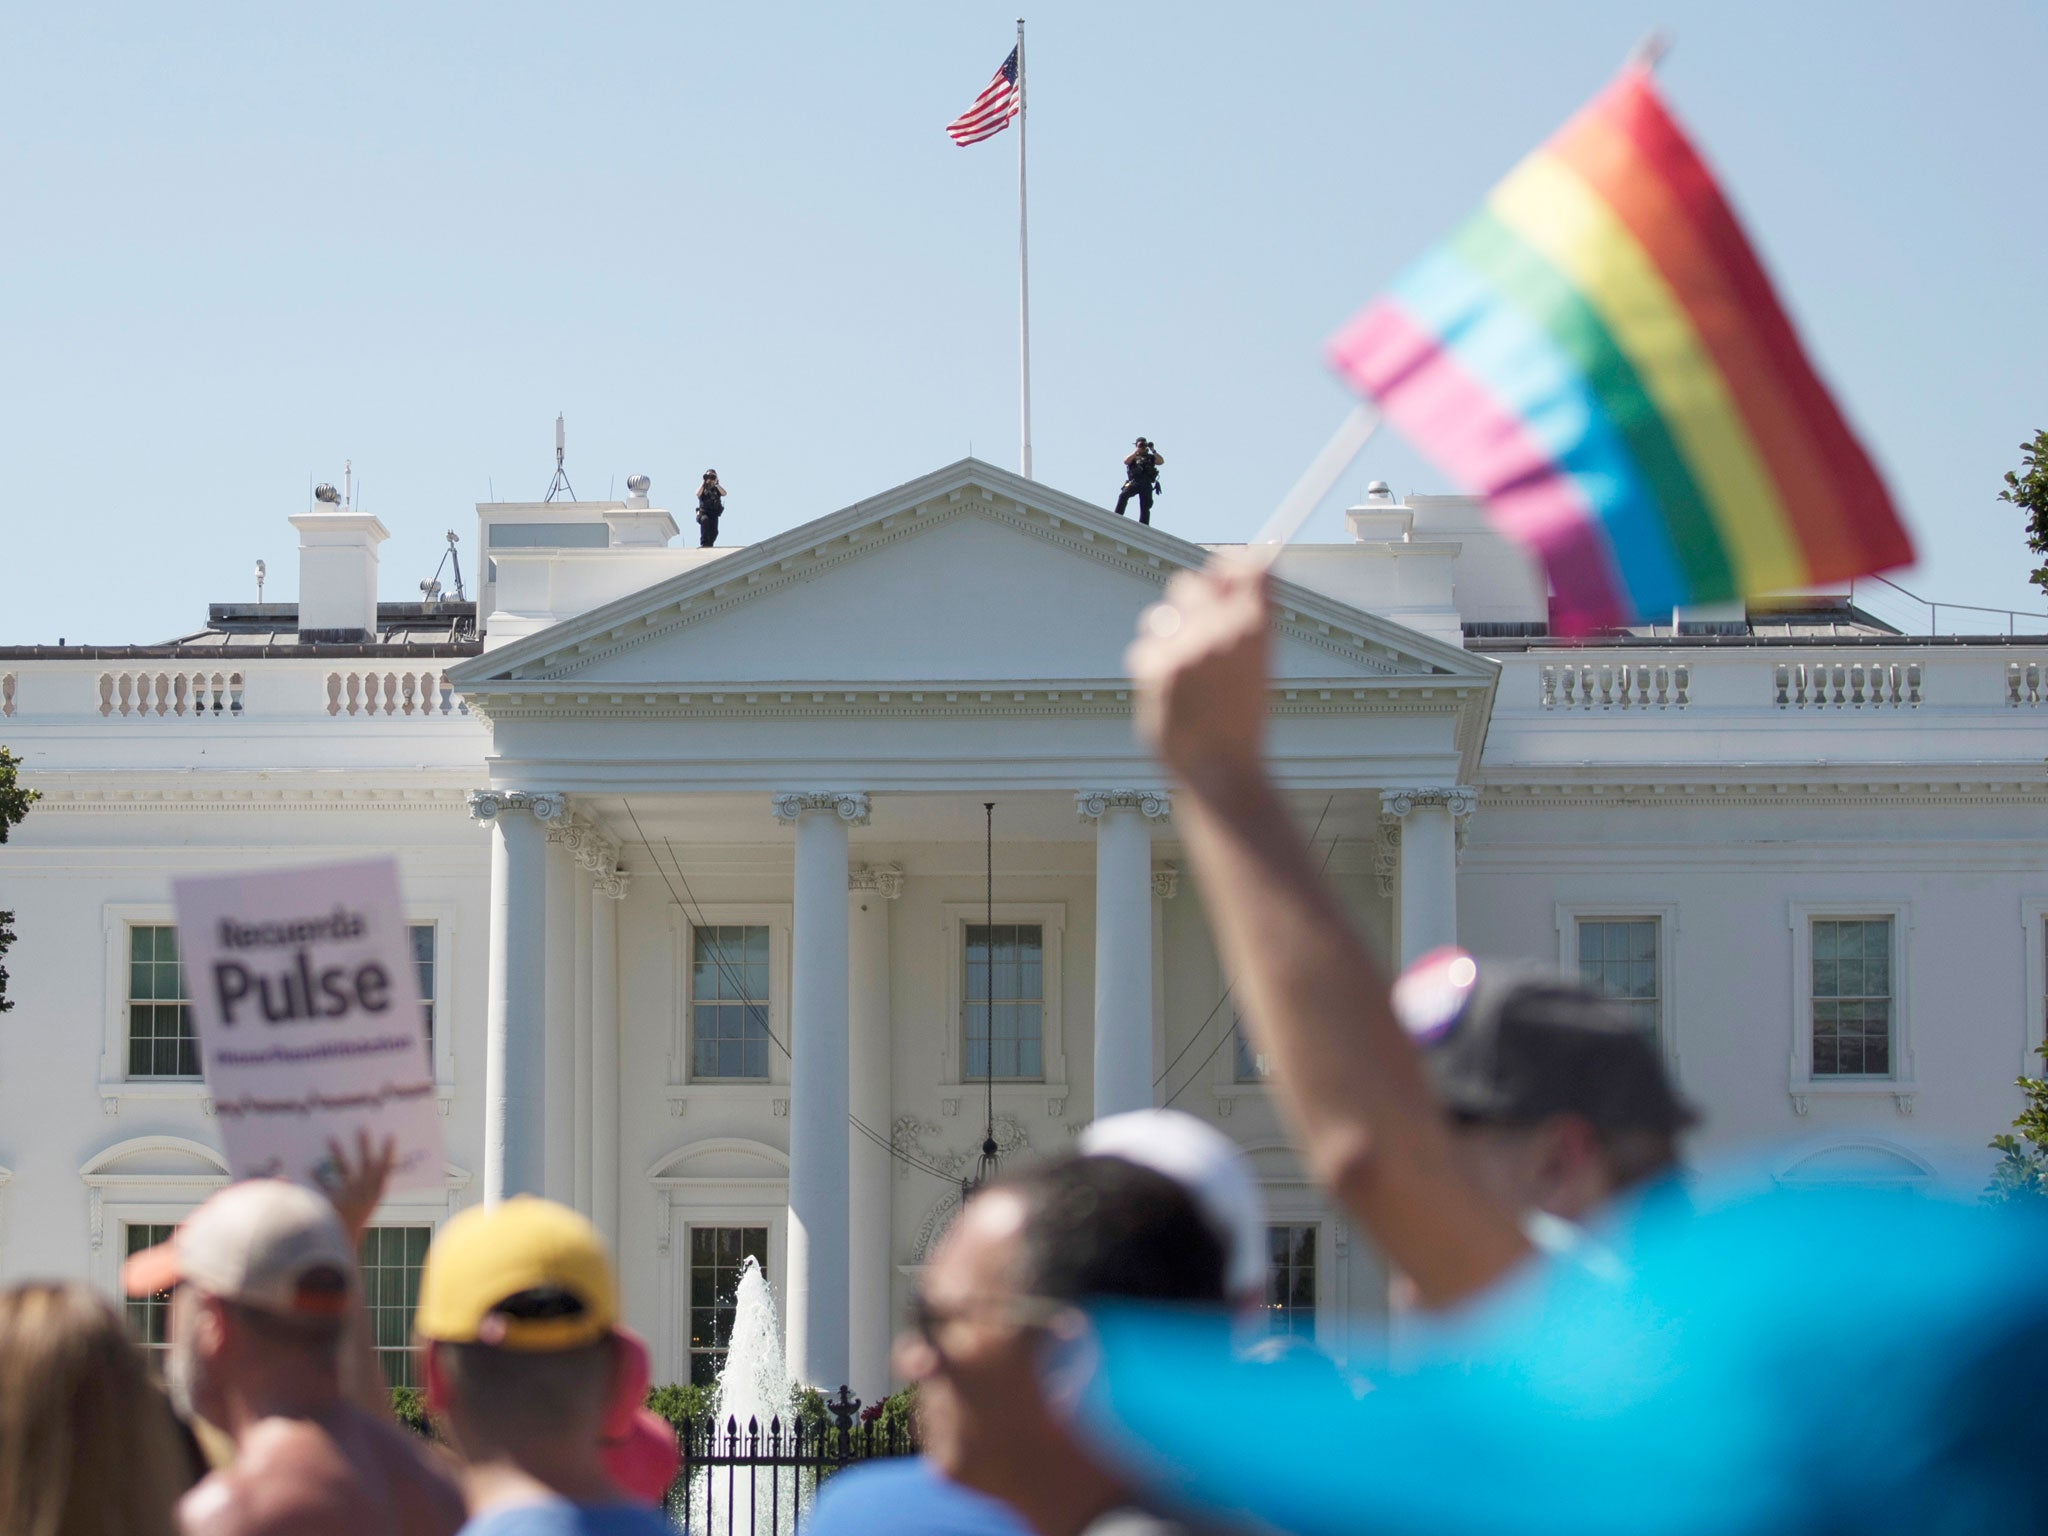 It's not just the military. Trump is also rolling back rights for LGBT people in the workplace